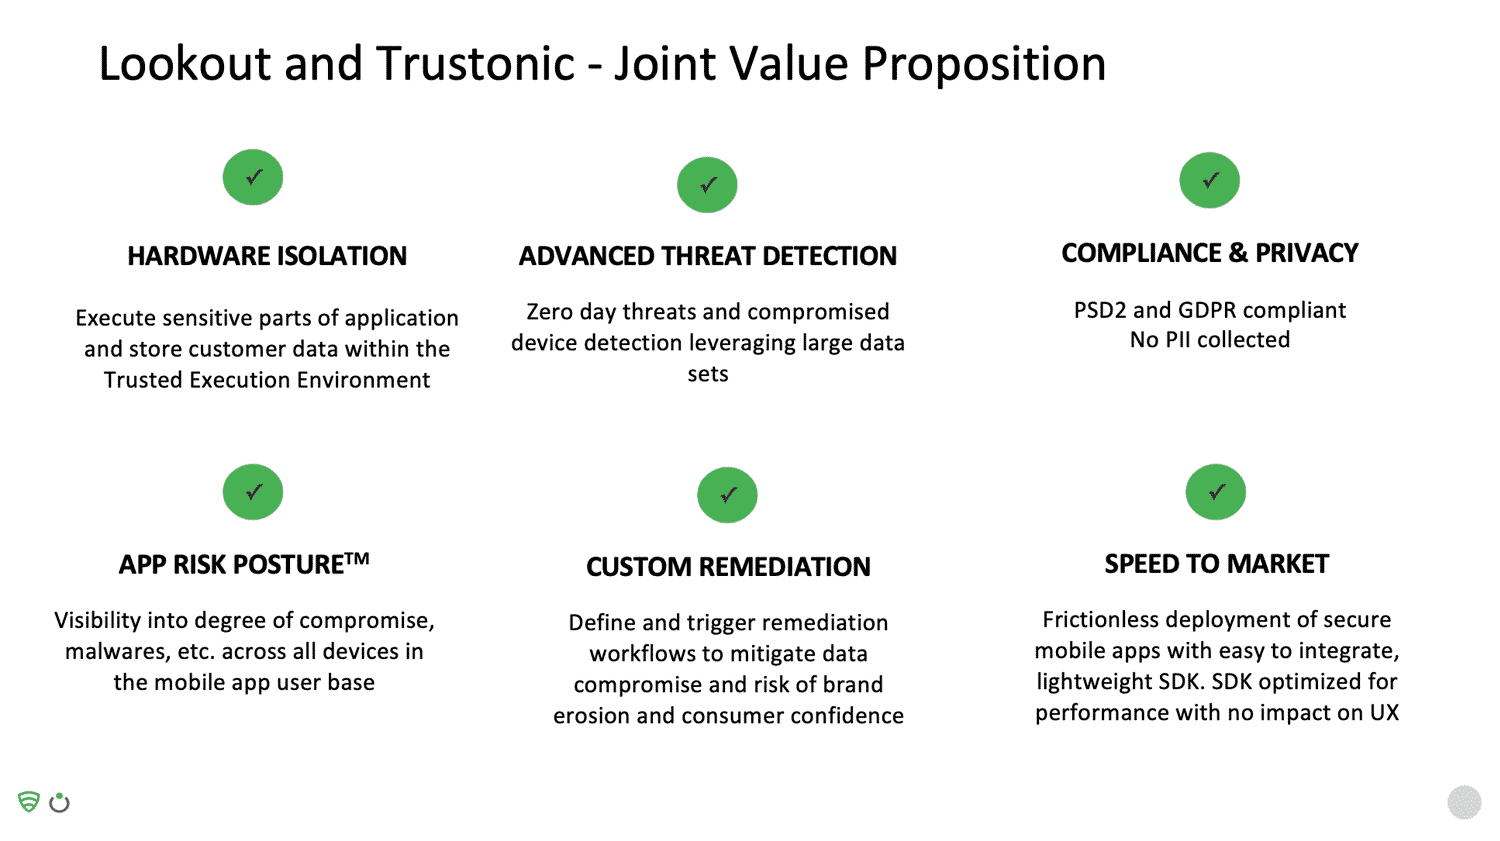 Lookout and Trustonic - Joint Value Proposition